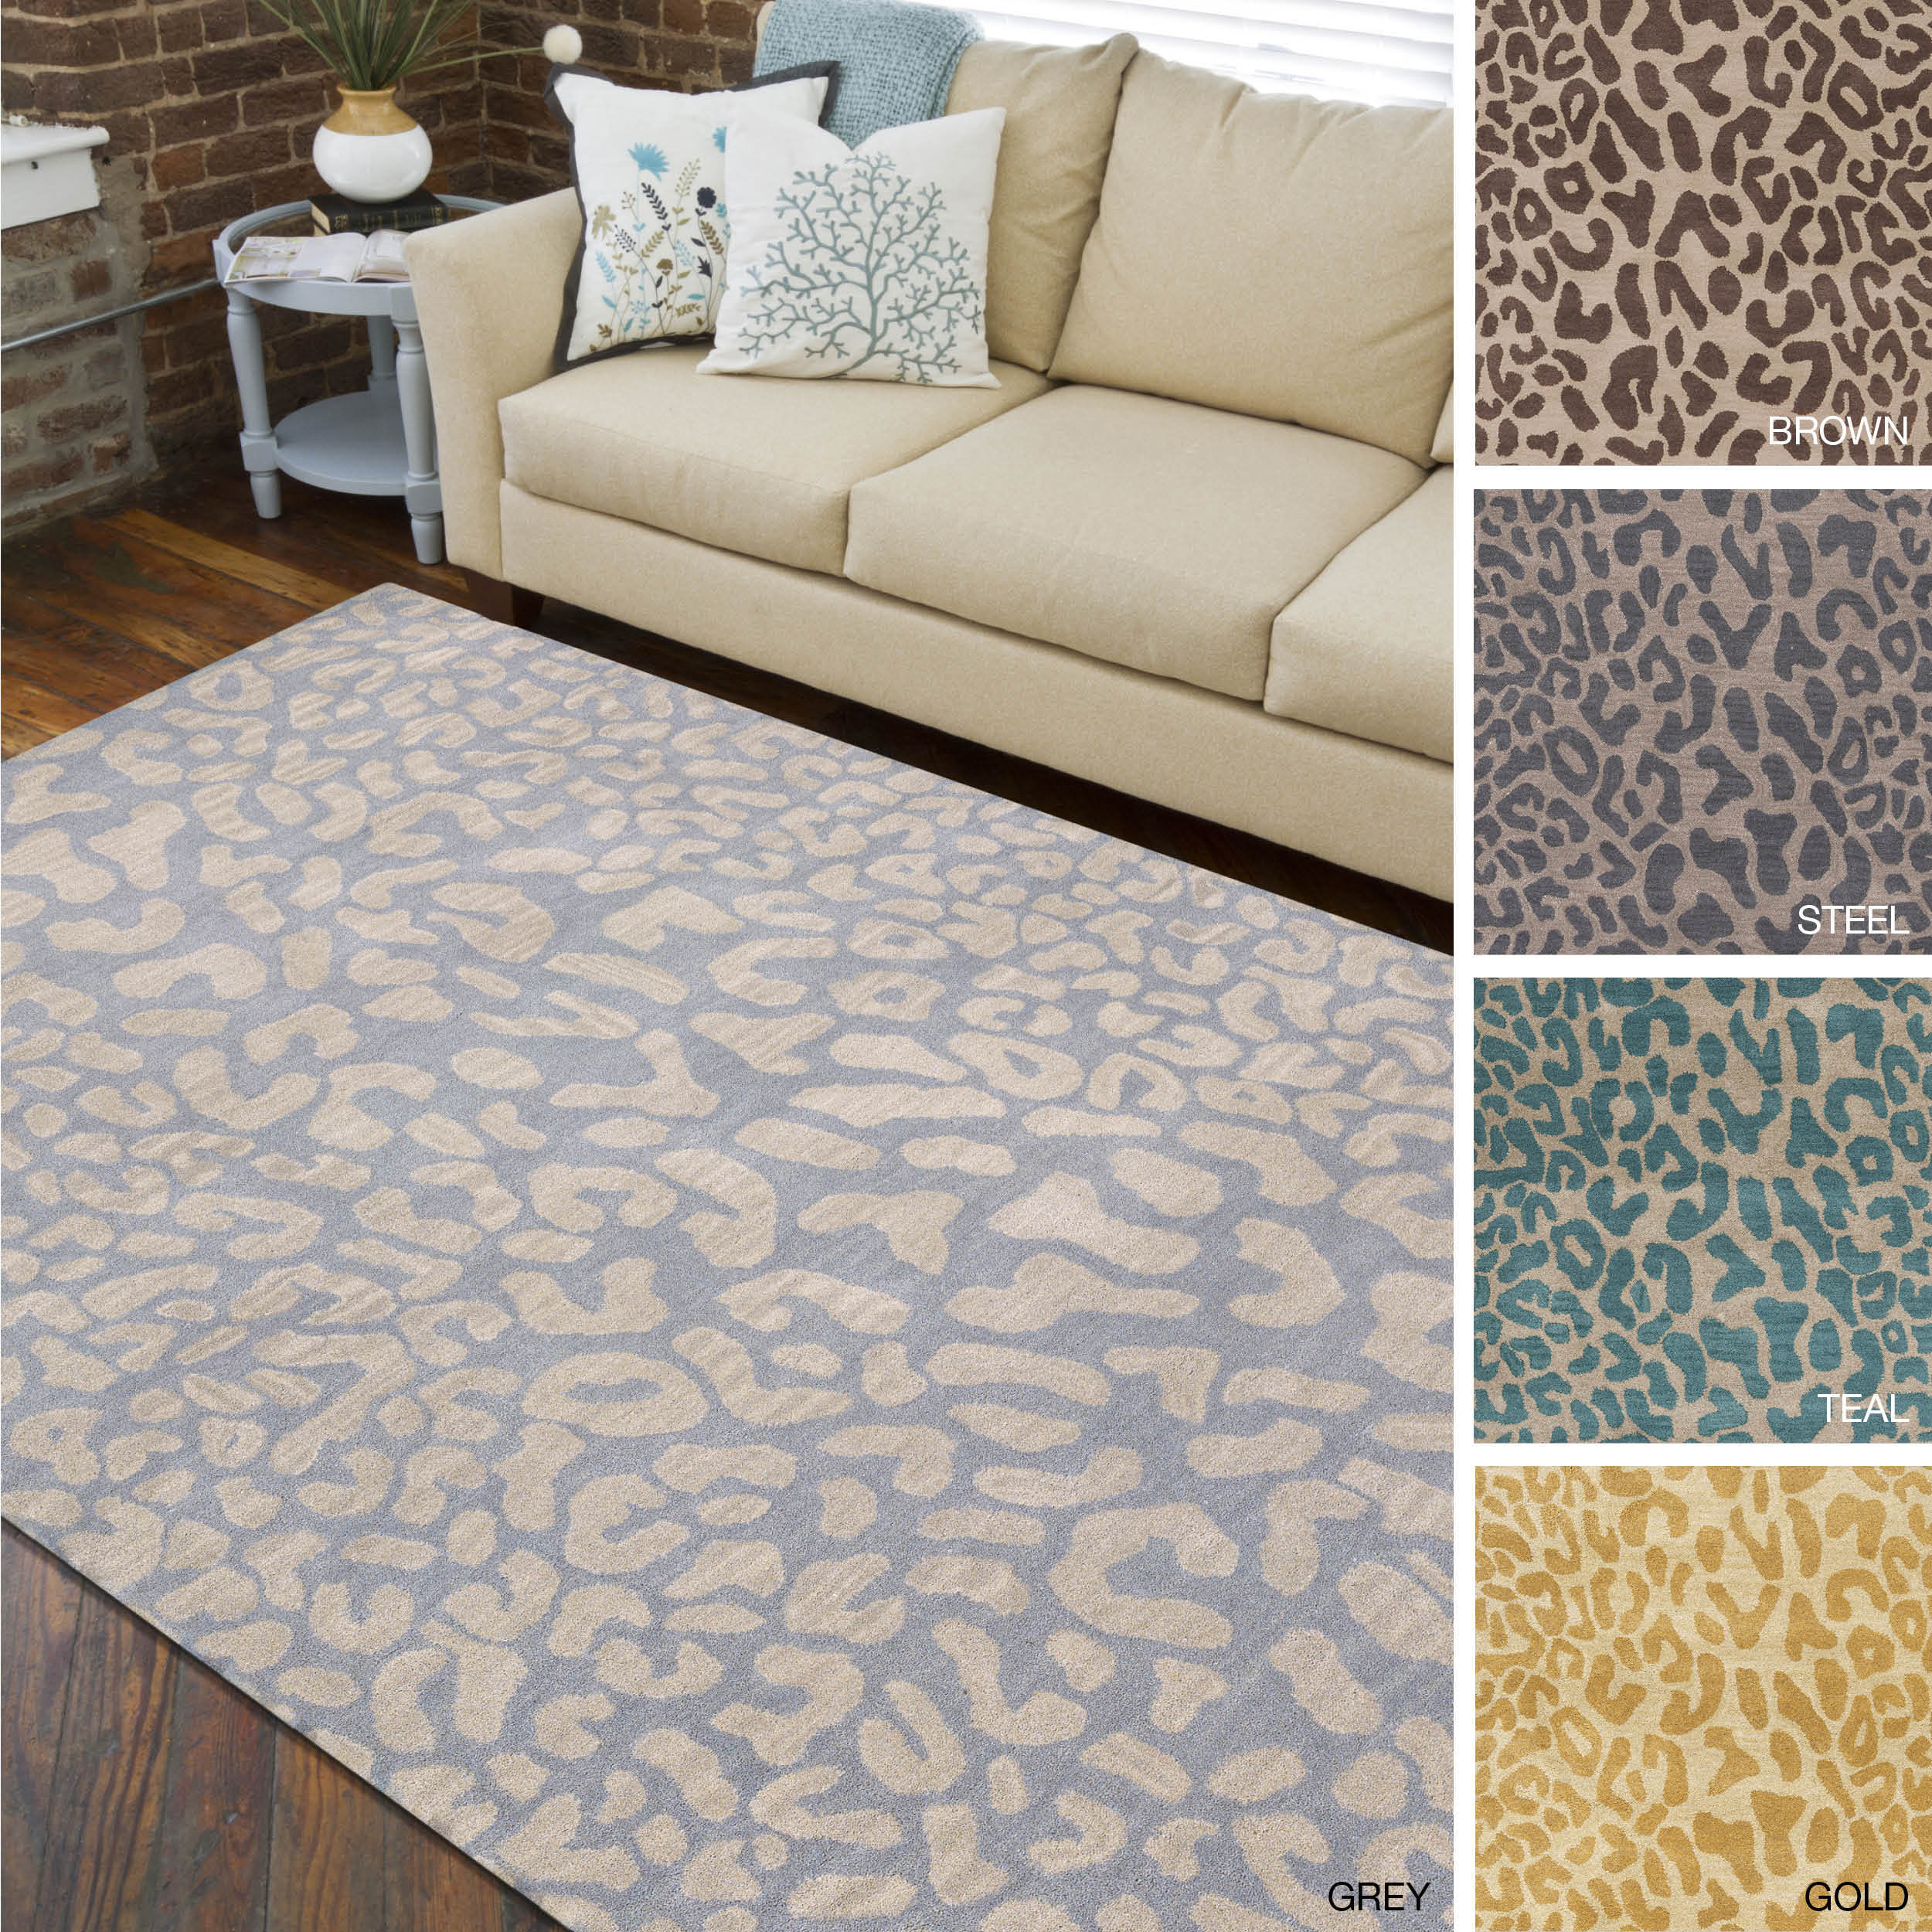 Hand Tufted Jungle Animal Print Wool Area Rug